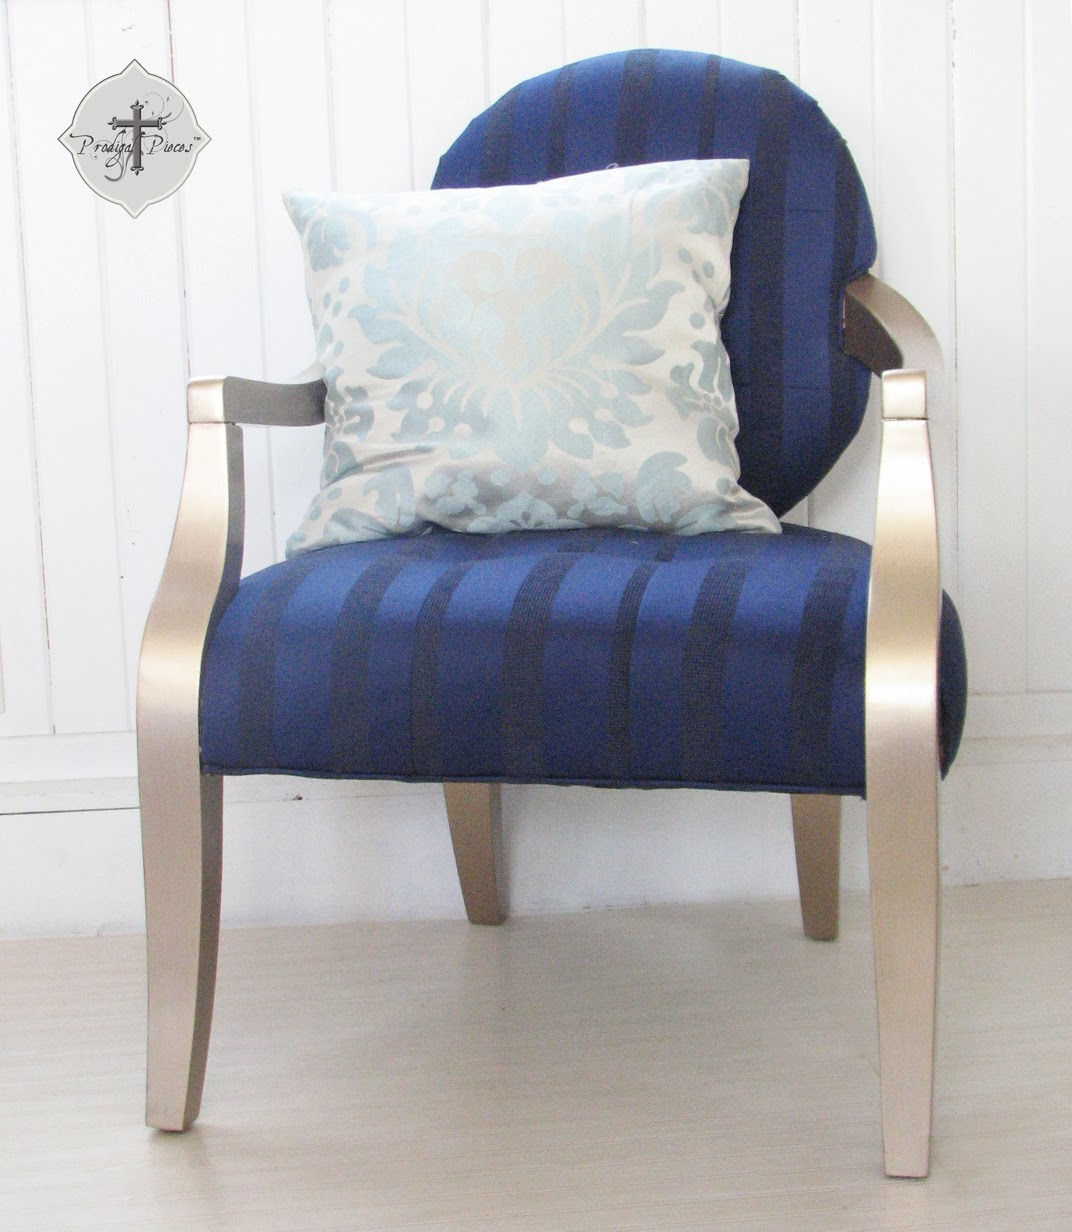 Stunning Gold & Royal Blue Upholstered Accent Chair via Prodigal Pieces